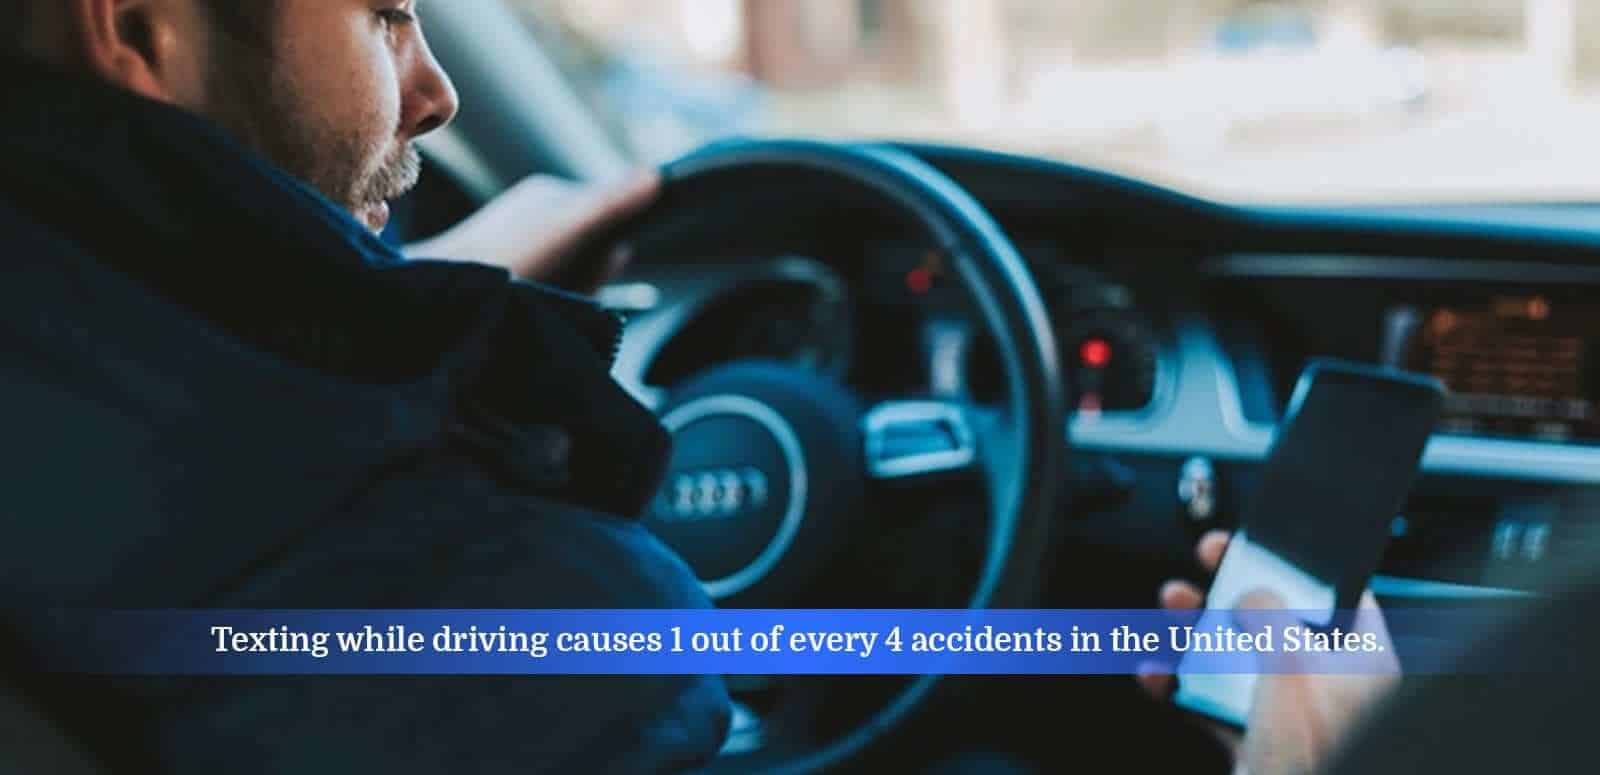 Texting while driving causes 1 out of every 4 accidents in the United States.